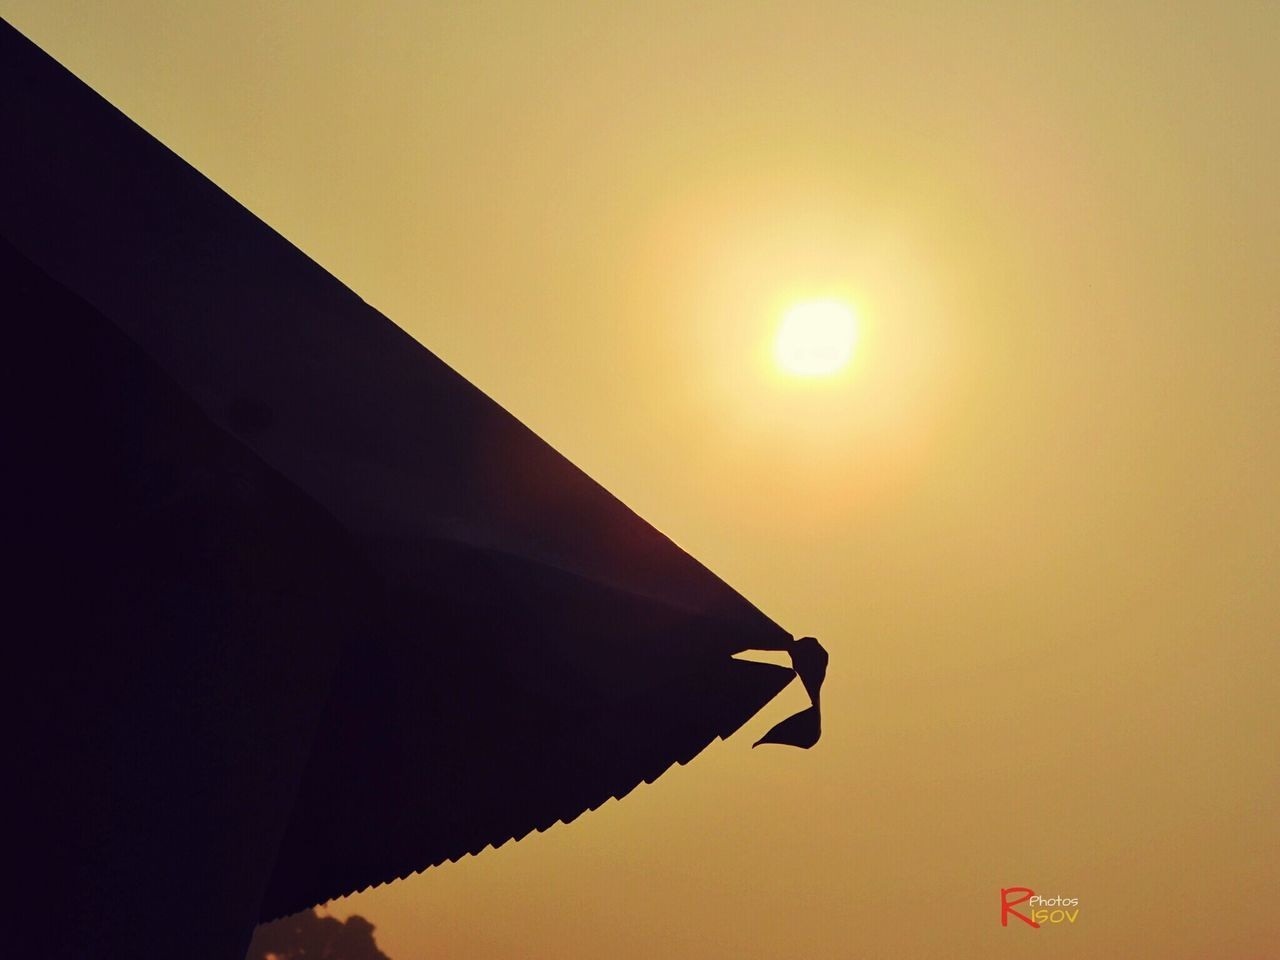 sunset, sun, no people, low angle view, outdoors, nature, silhouette, sunlight, sky, beauty in nature, close-up, day